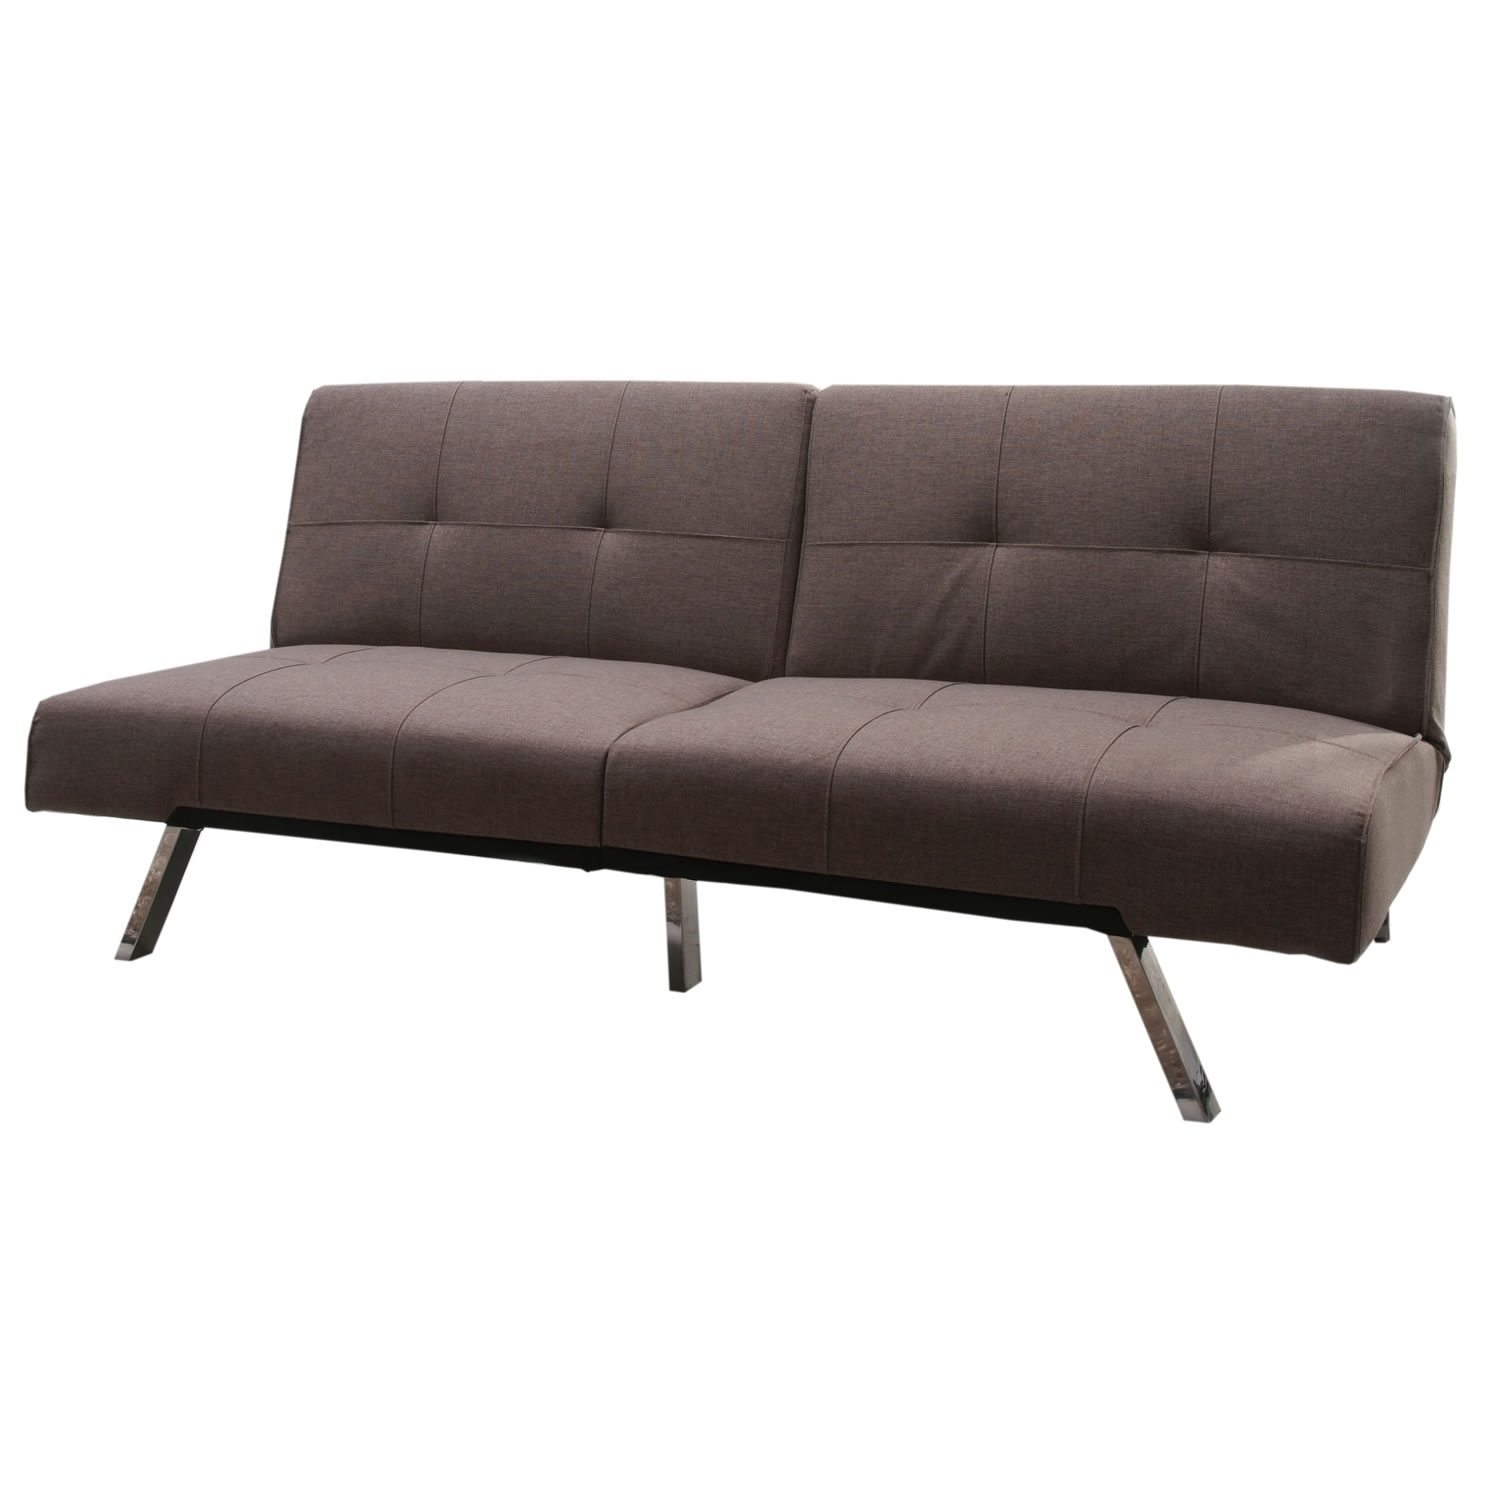 Living Spaces Couches | Bed Couch Walmart | Walmart Futon